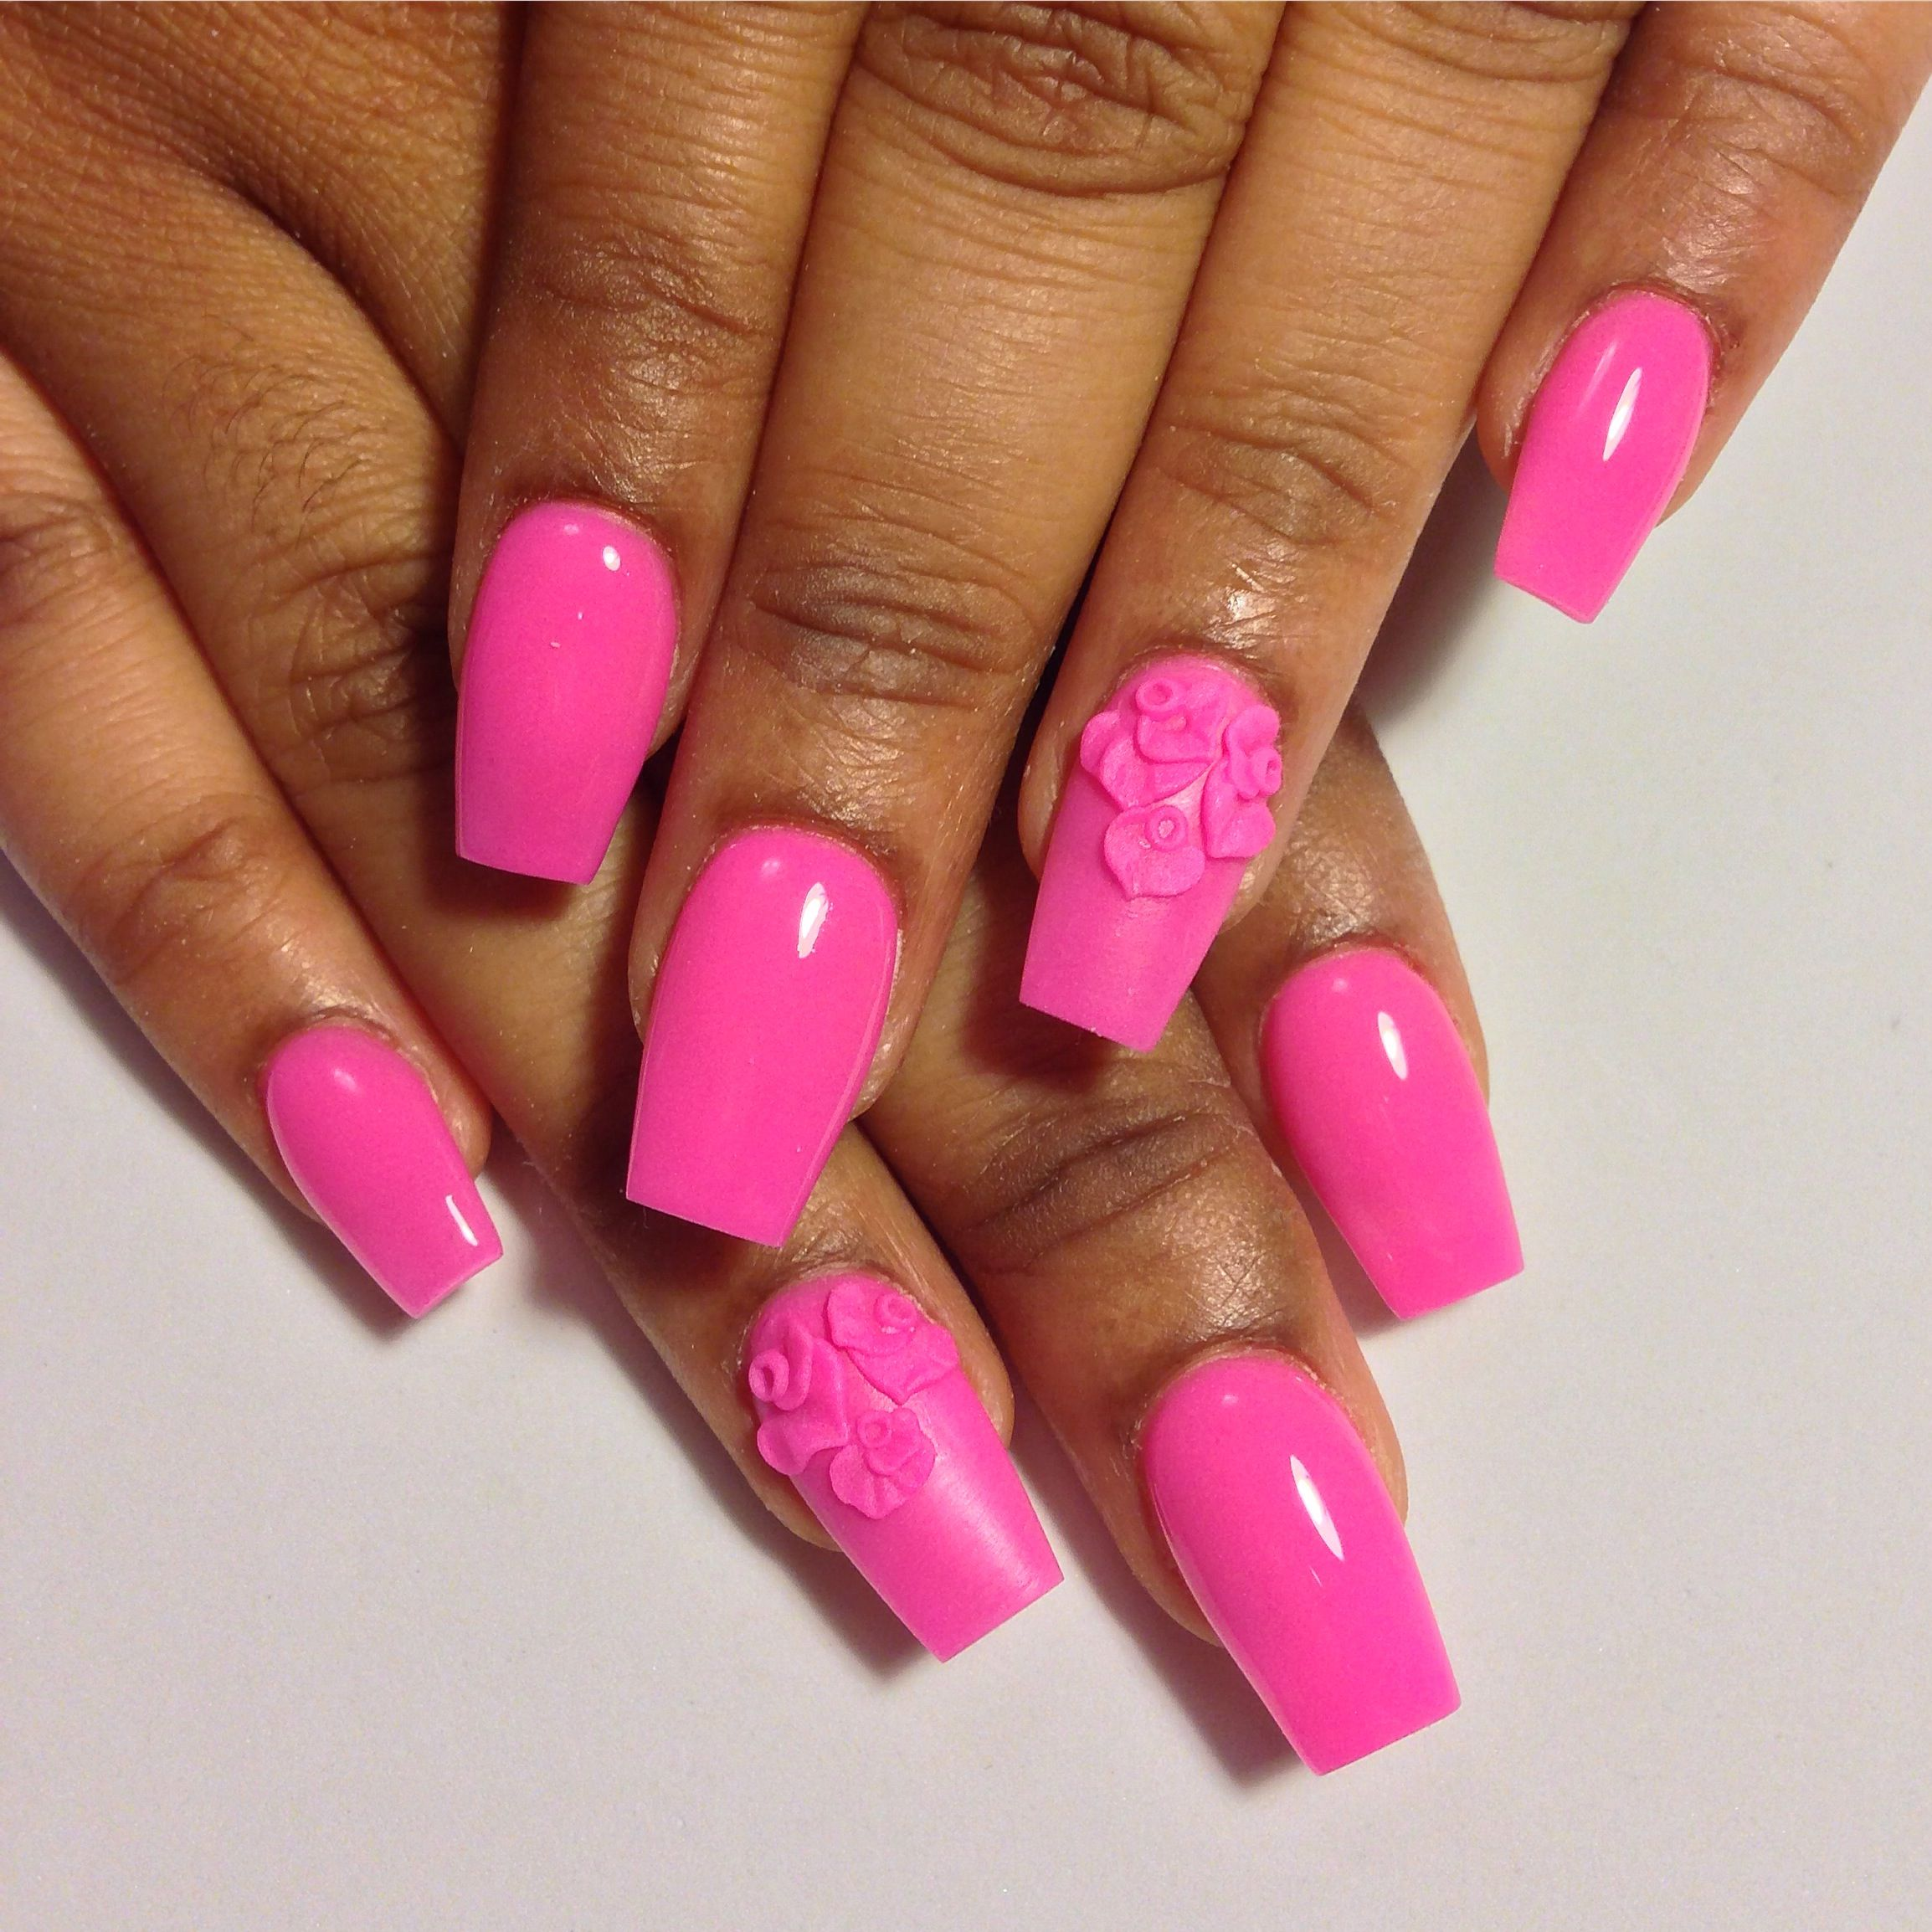 Hot Pink Coffin Shaped Nails With 3d Flowers All Acrylic No Polish Like The Shape Not Necessarily The Color Coffin Shape Nails Nails Nails Inspiration